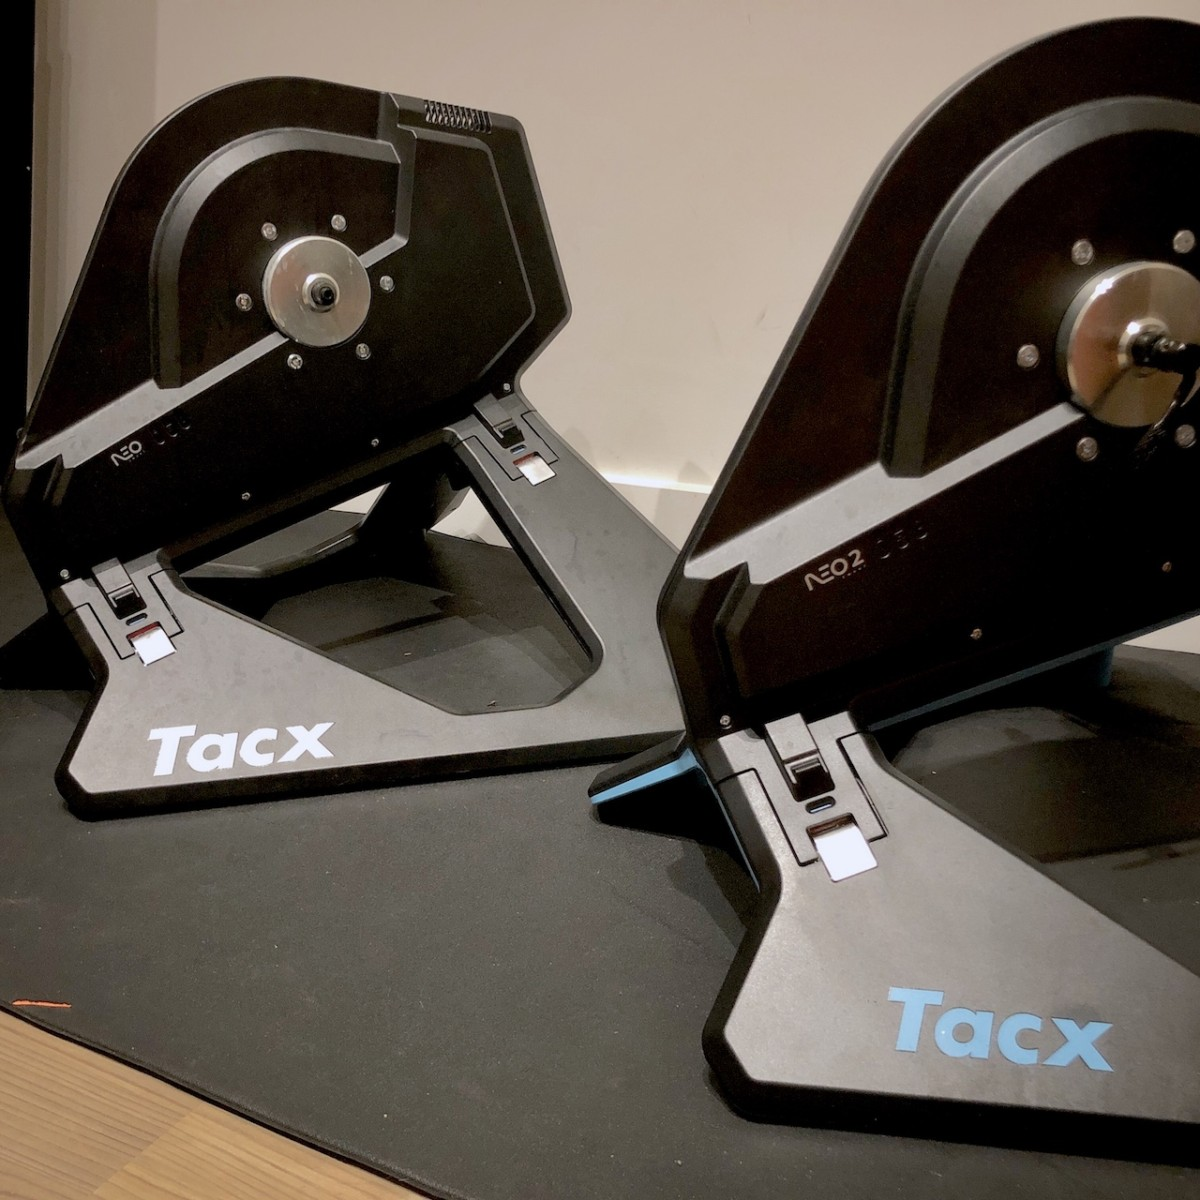 TitaniumGeek IMG 6118 Tacx NEO 2 Smart Trainer & Tacx NEO Smartbike ​  Preview Cycling Gear Reviews Smart Trainers Zwift  Zwift TacX Neo Tacx Smart trainer smart bike cycling   Image of IMG 6118